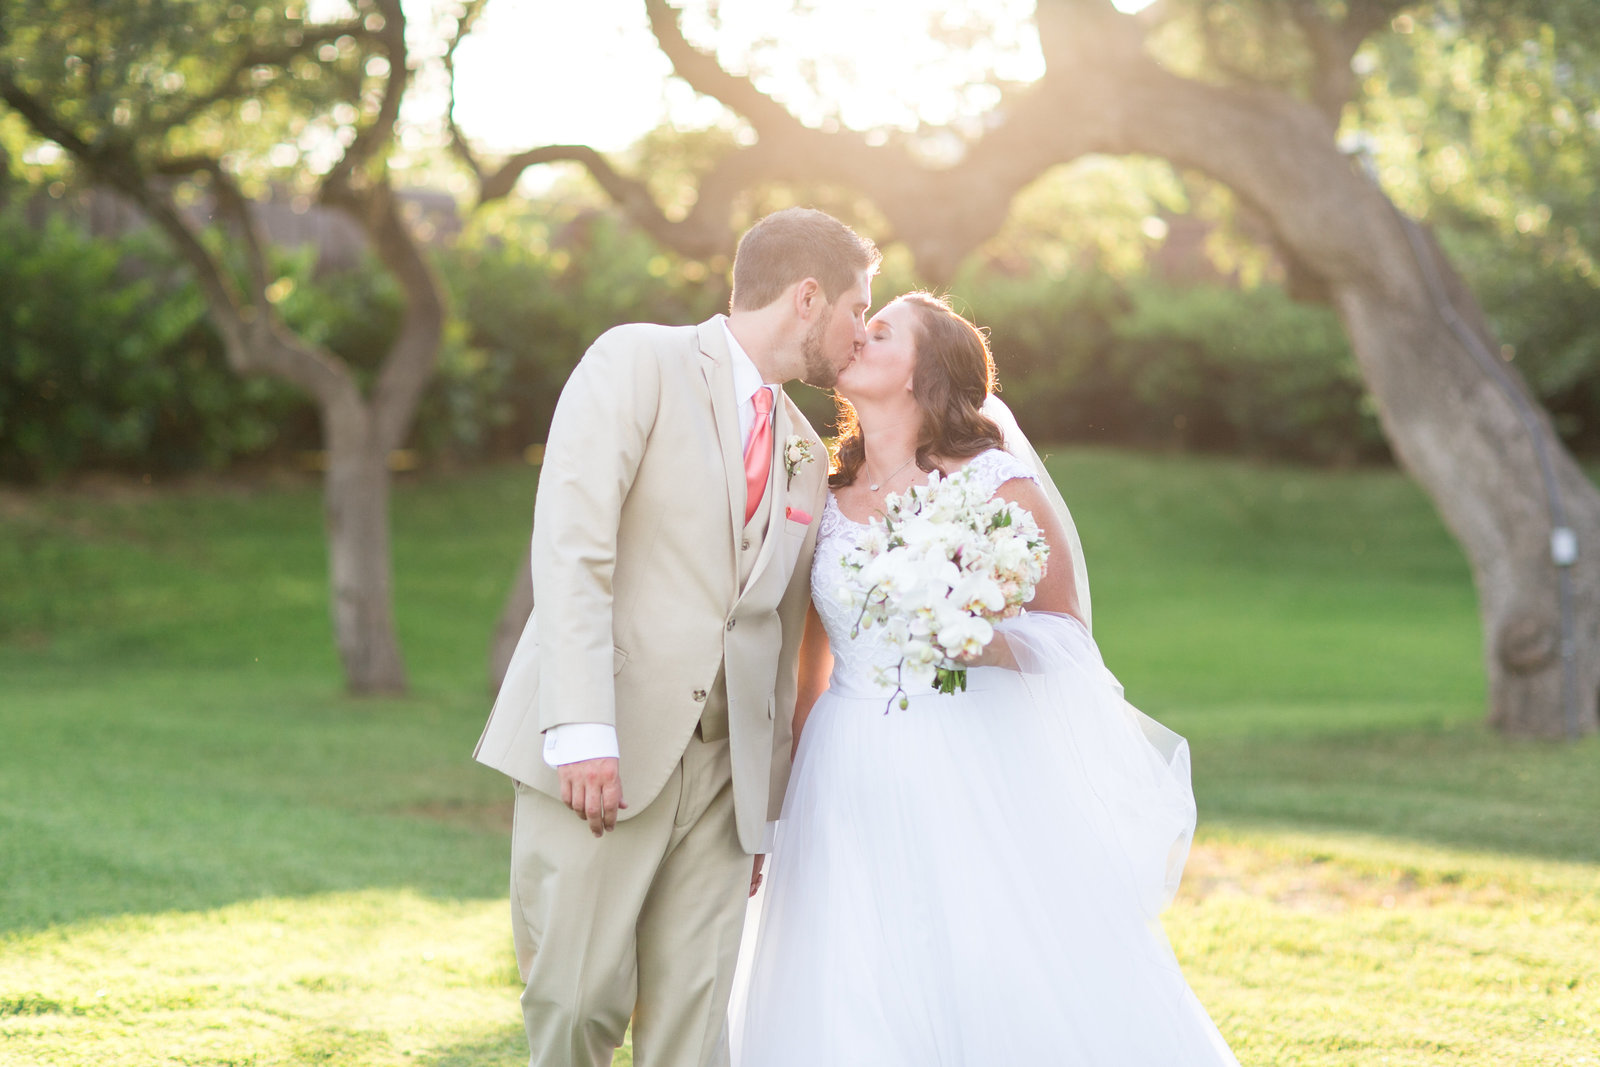 the-springs-event-venue-new-braunfels-texas-wedding-bride-and-groom-photo-85